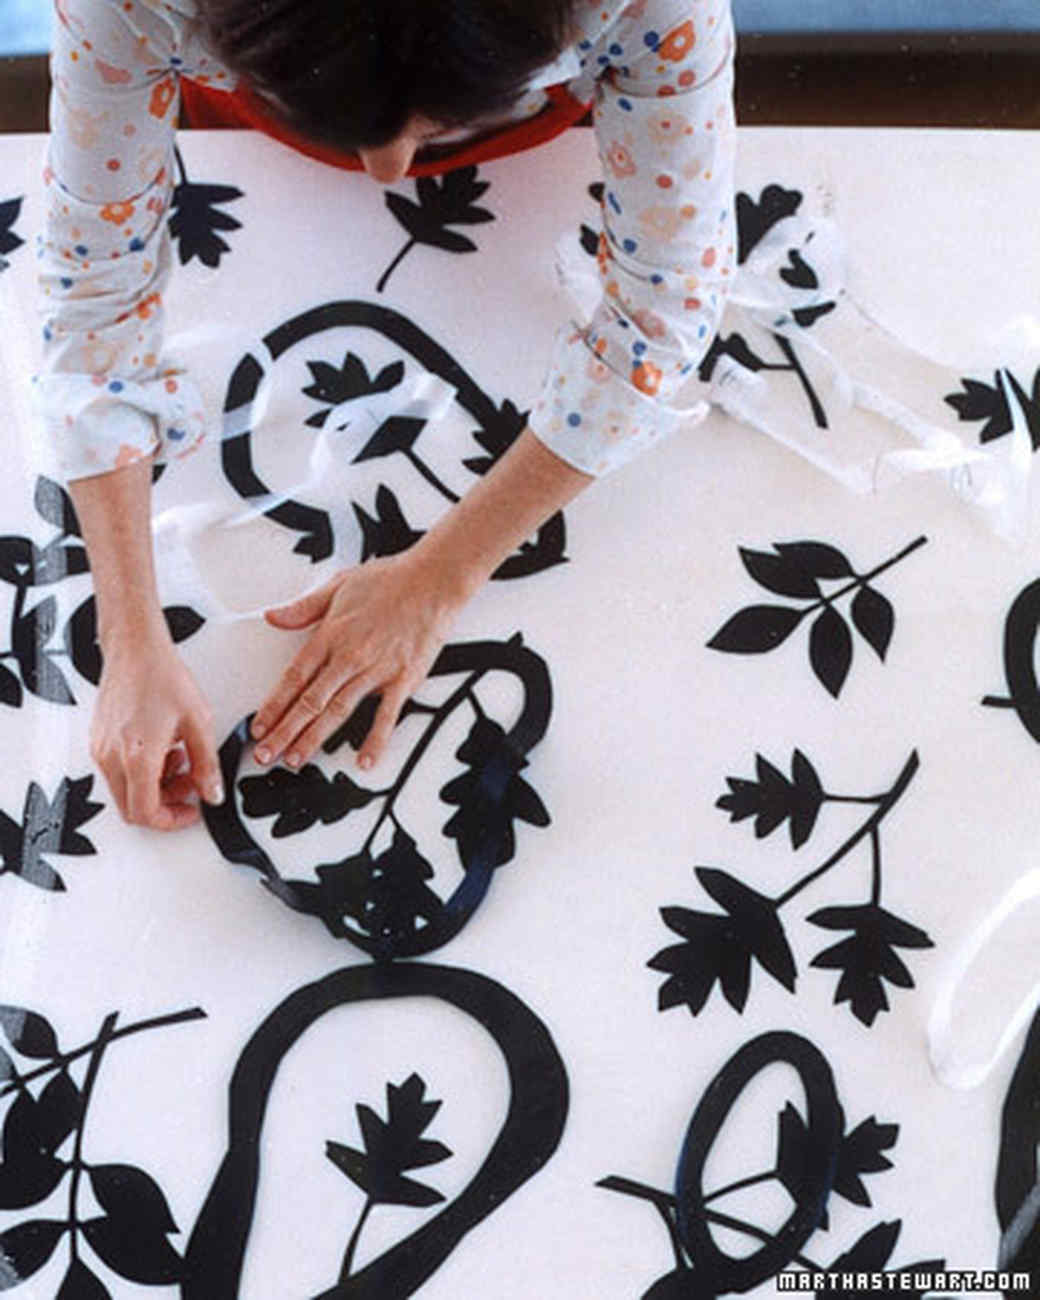 Top 10 Stencil And Painted Rug Ideas For Wood Floors: Making Canvas Rugs